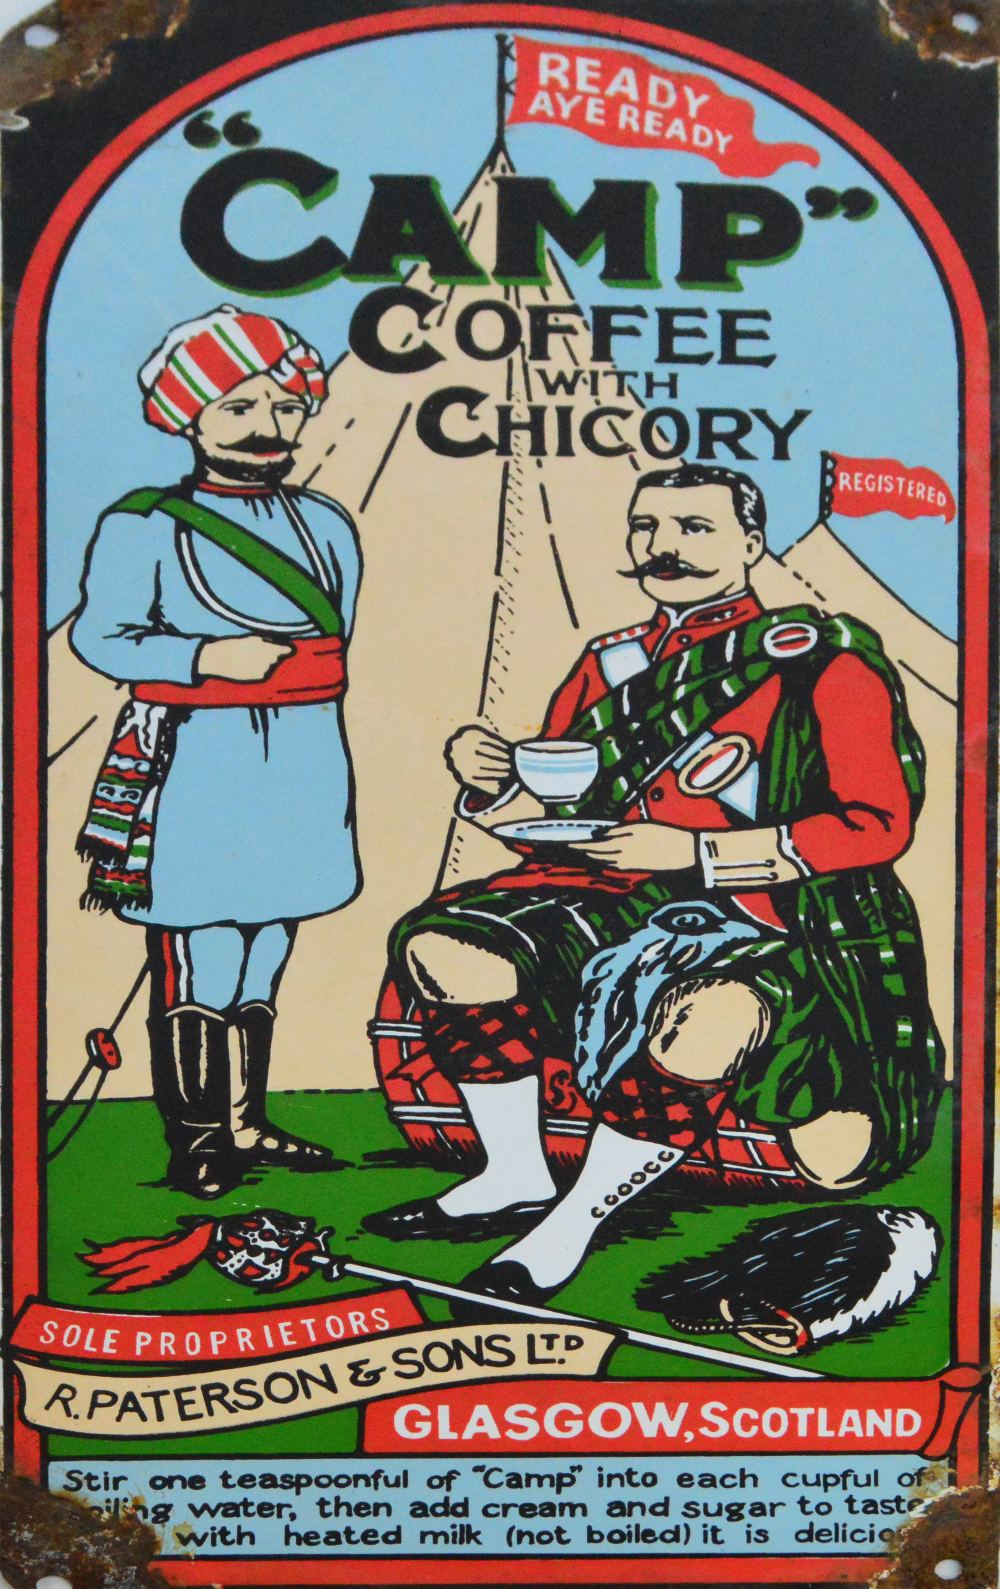 93b47787c67 on target shooter nz: Politically Correct CAMP COFFEE Essence: